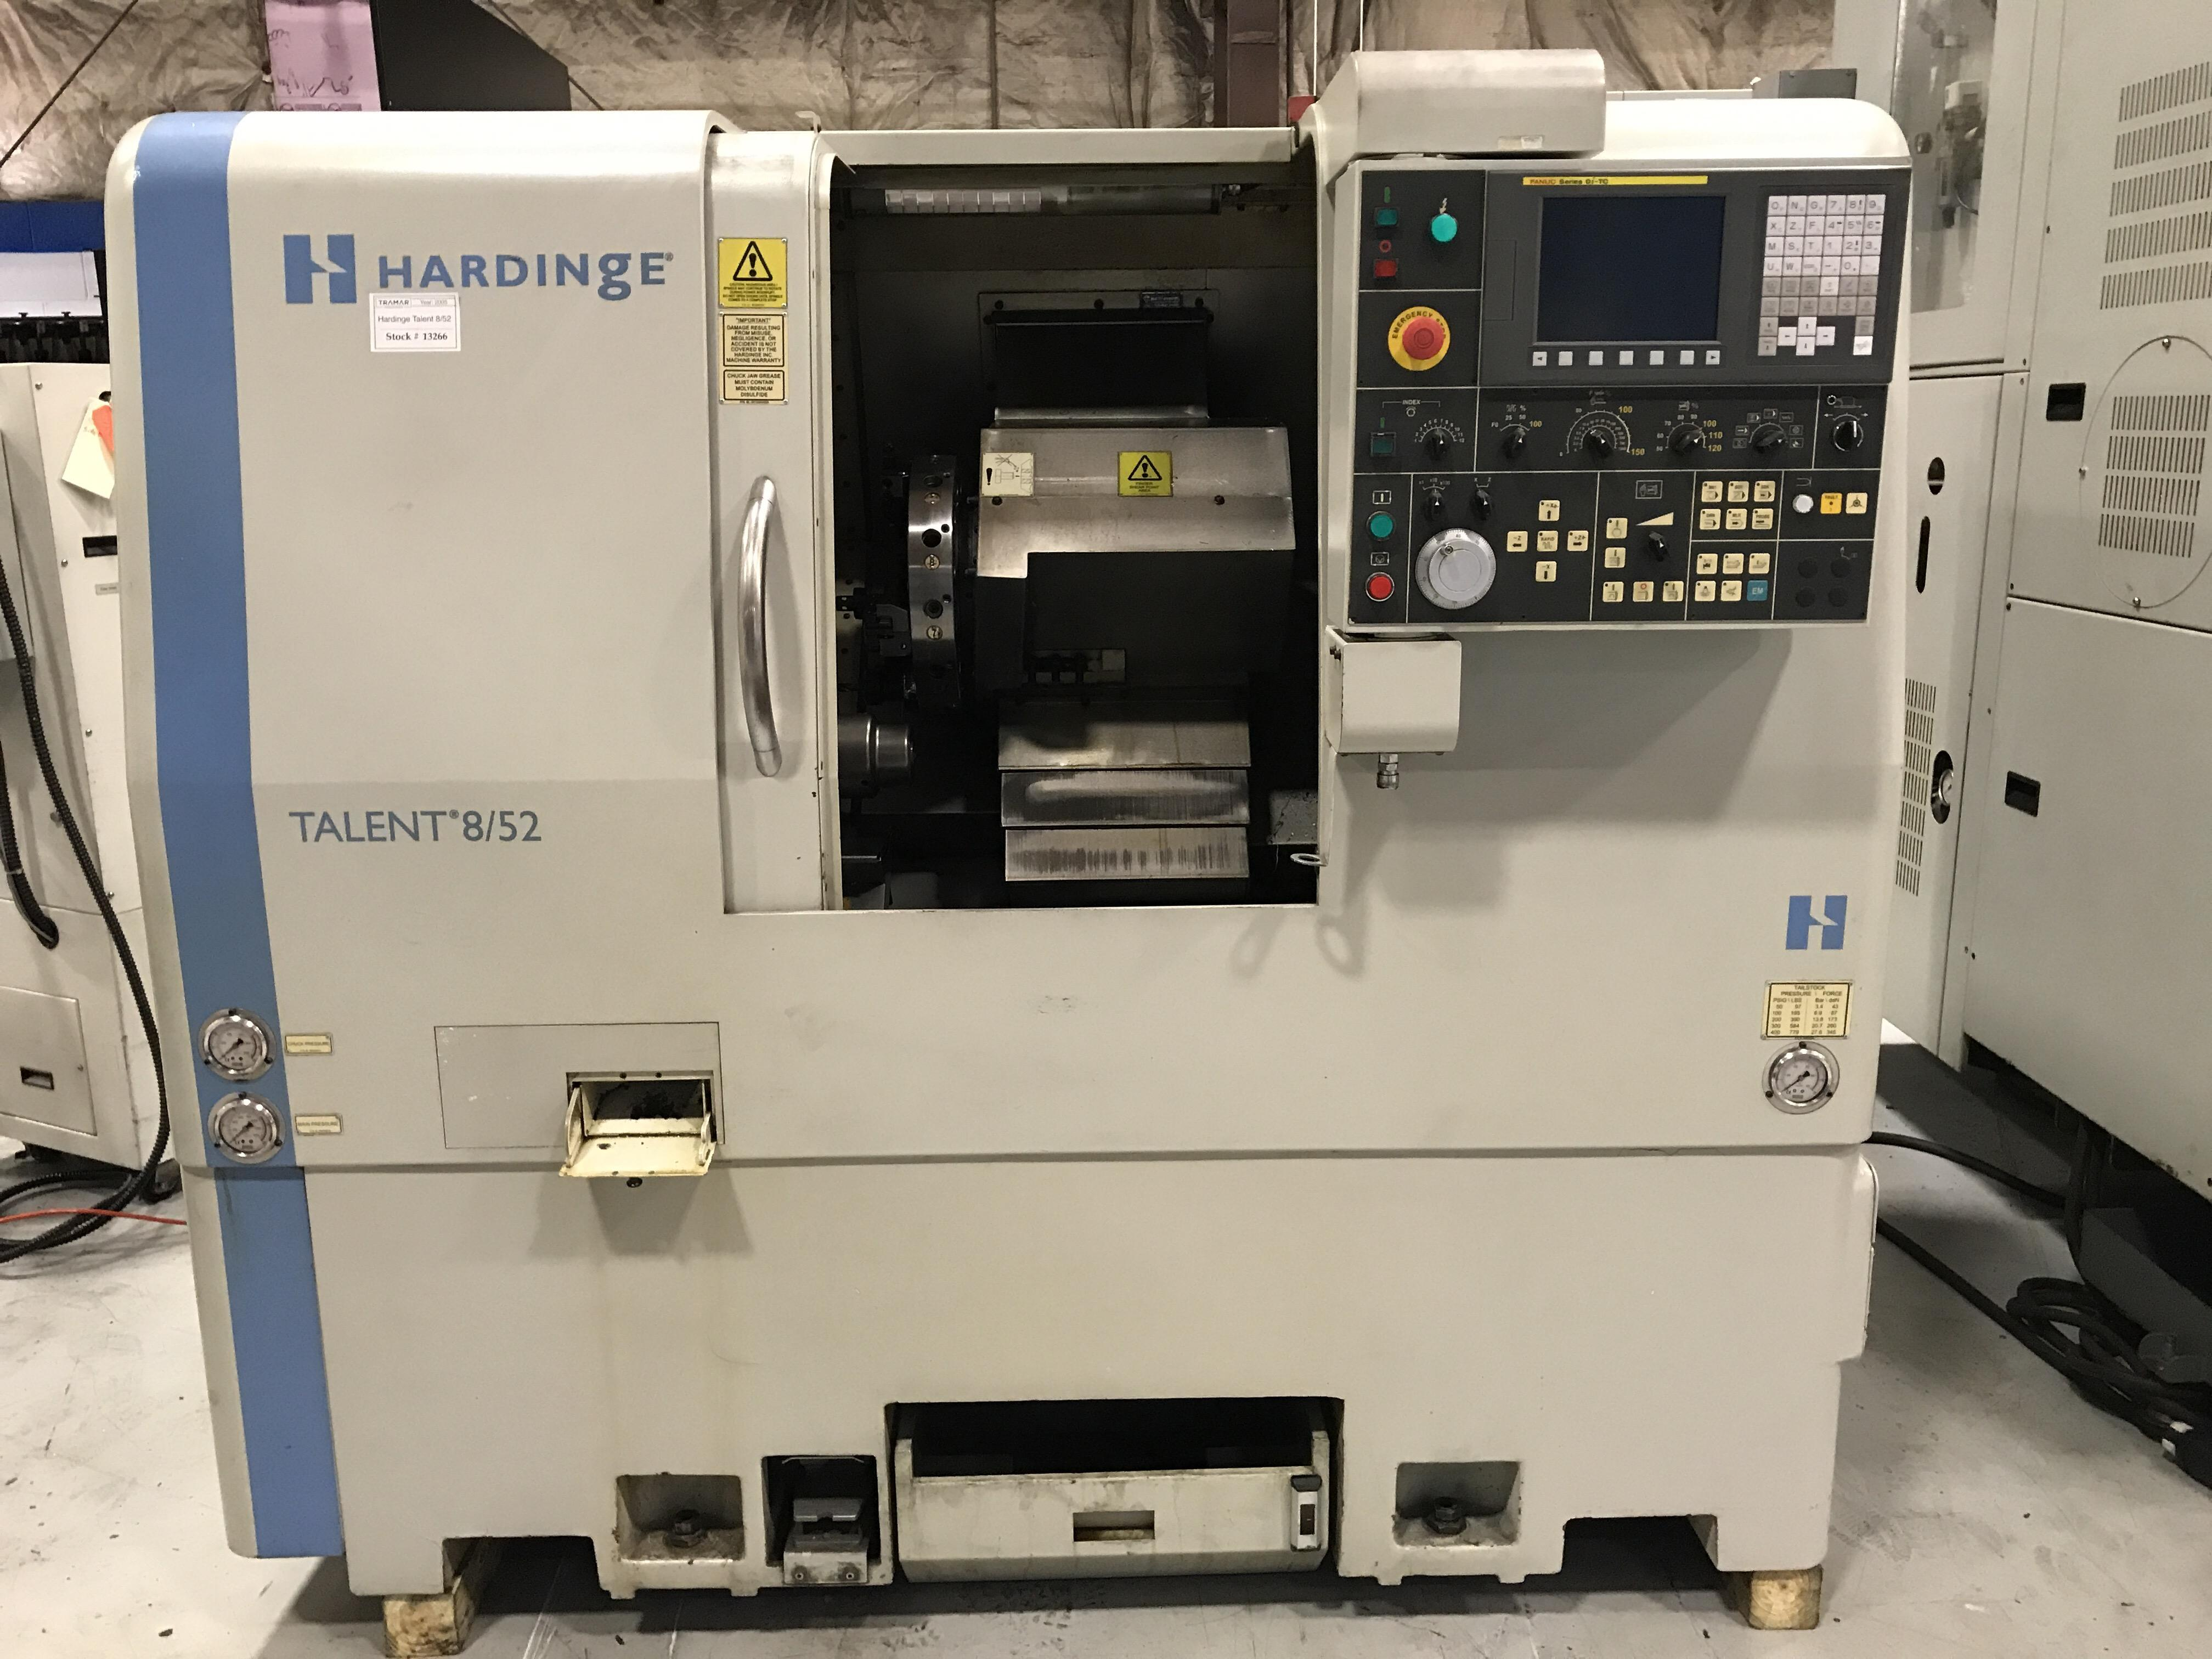 2005 Hardinge Talent 8/52 - CNC Horizontal Lathe